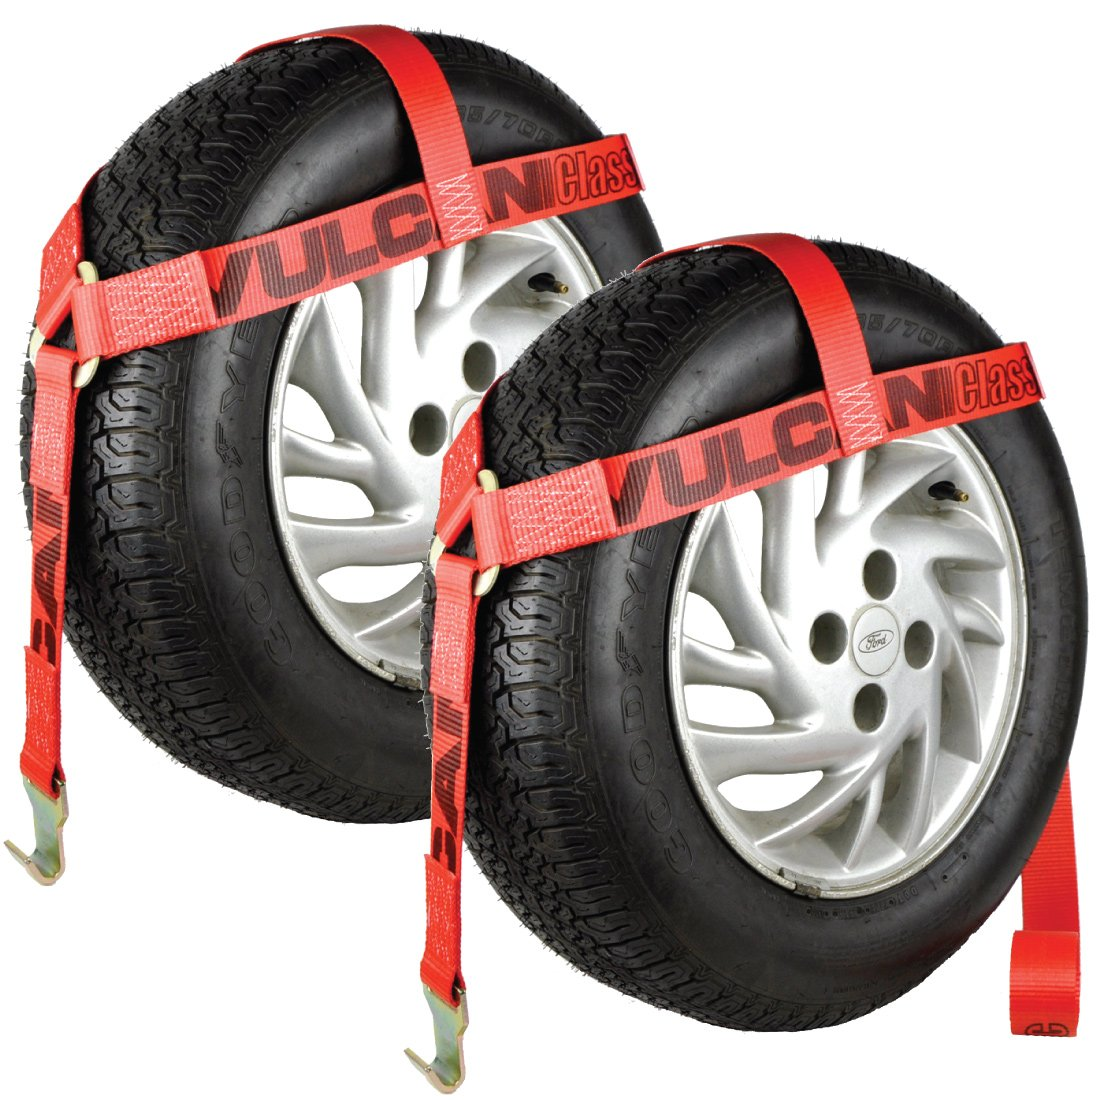 Vulcan Car Dolly Tire Harness Red - 2 pack